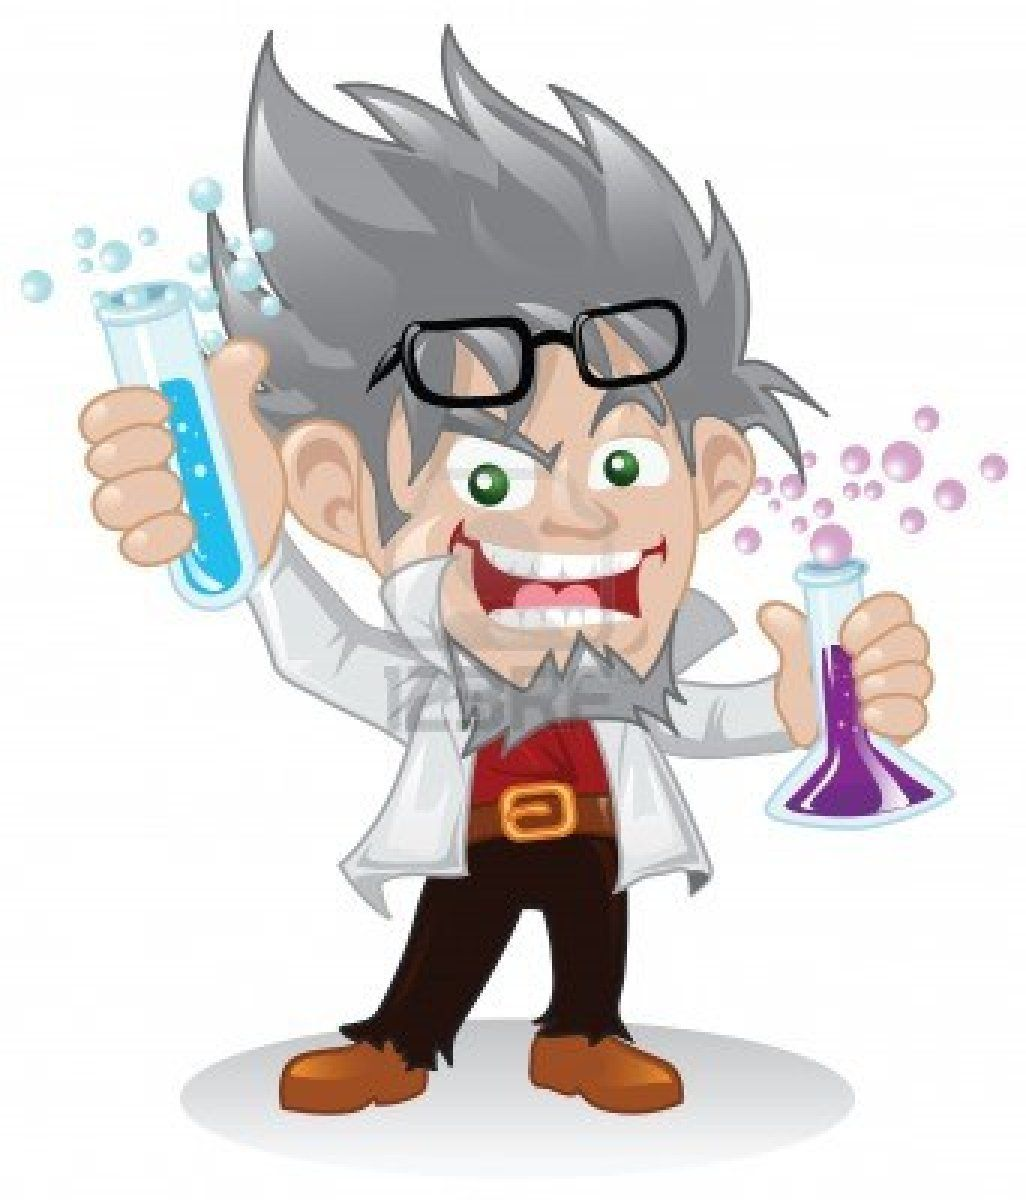 Mad scientist cartoon images mad scientist muscle bust - Dessin de prof ...